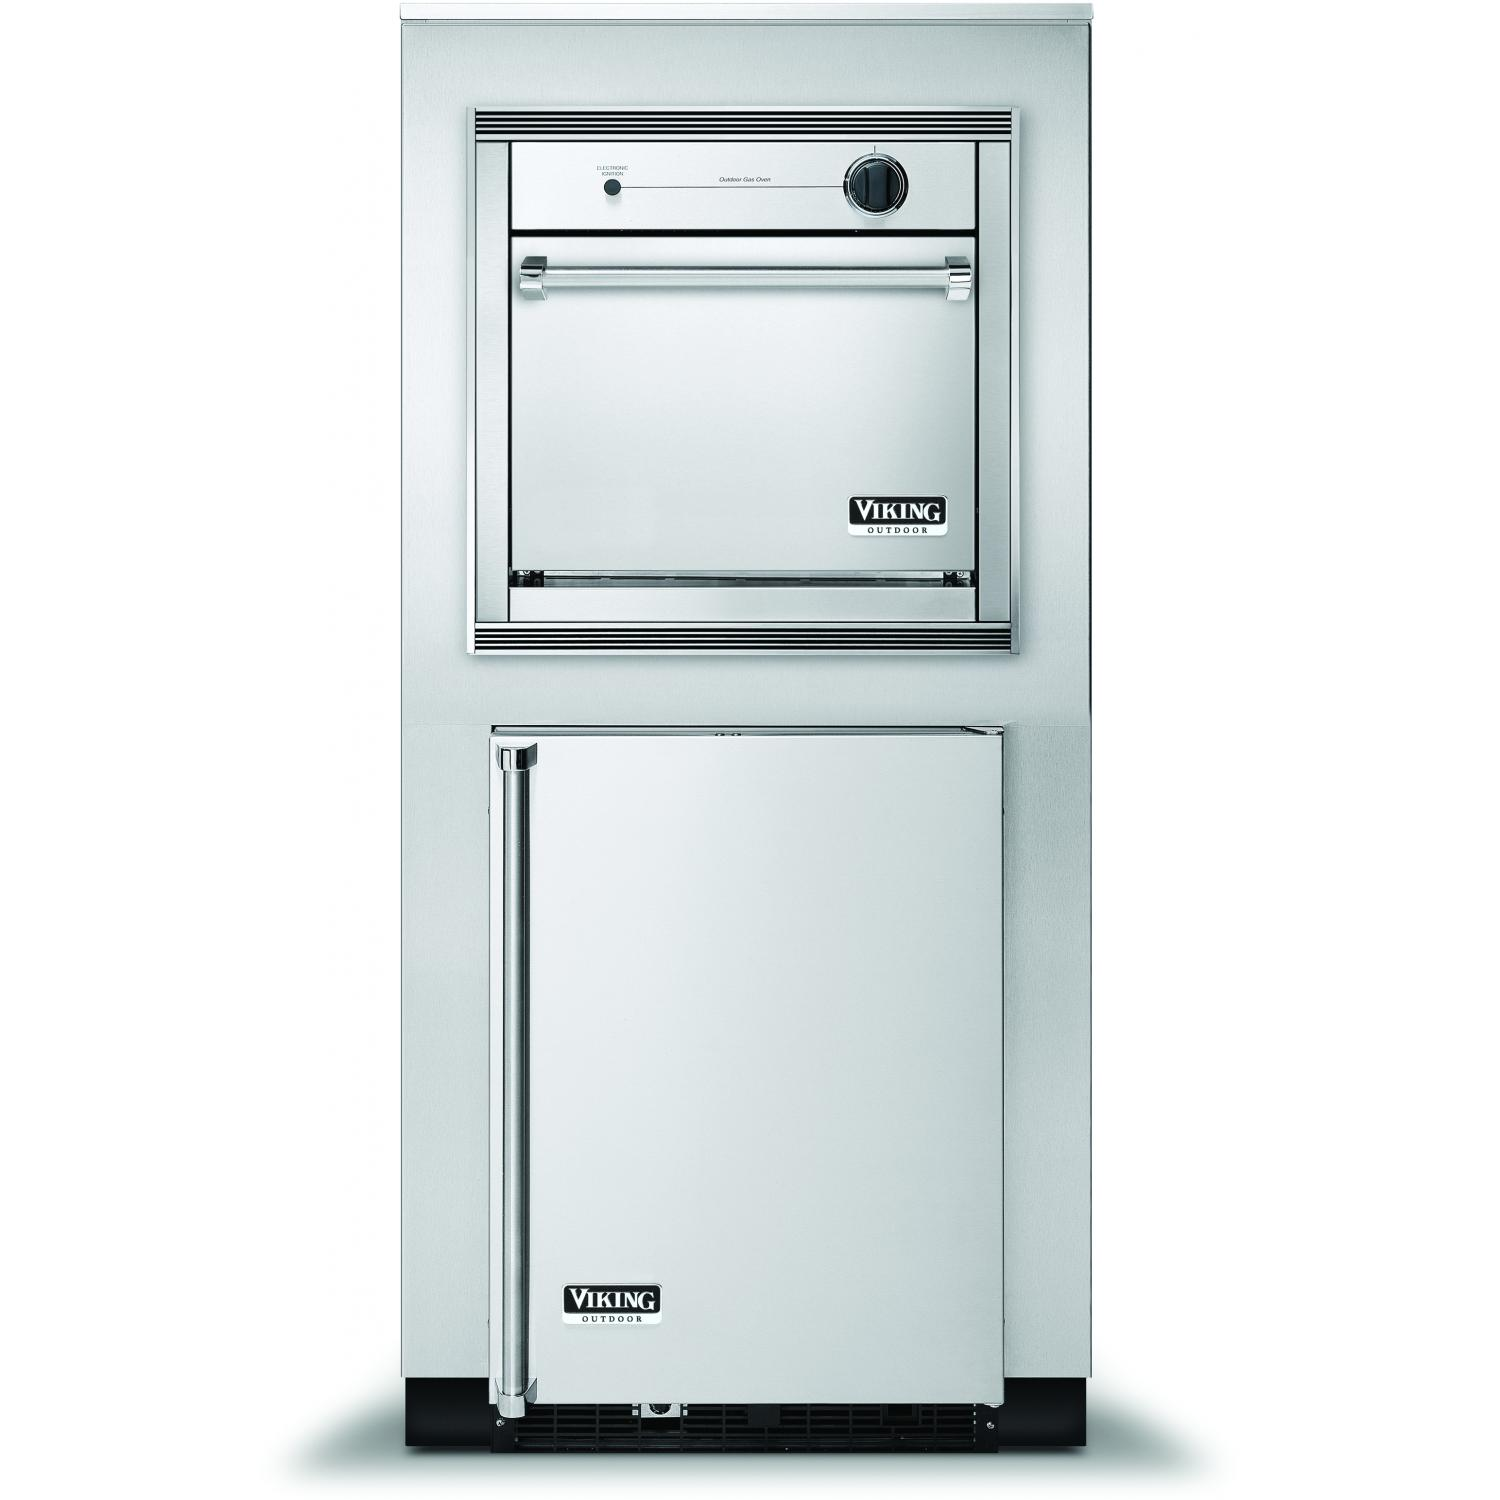 Viking VGSO260TLSS 26-Inch Propane Outdoor Oven In Tower Cabinet With Beverage Center - Right Hinge